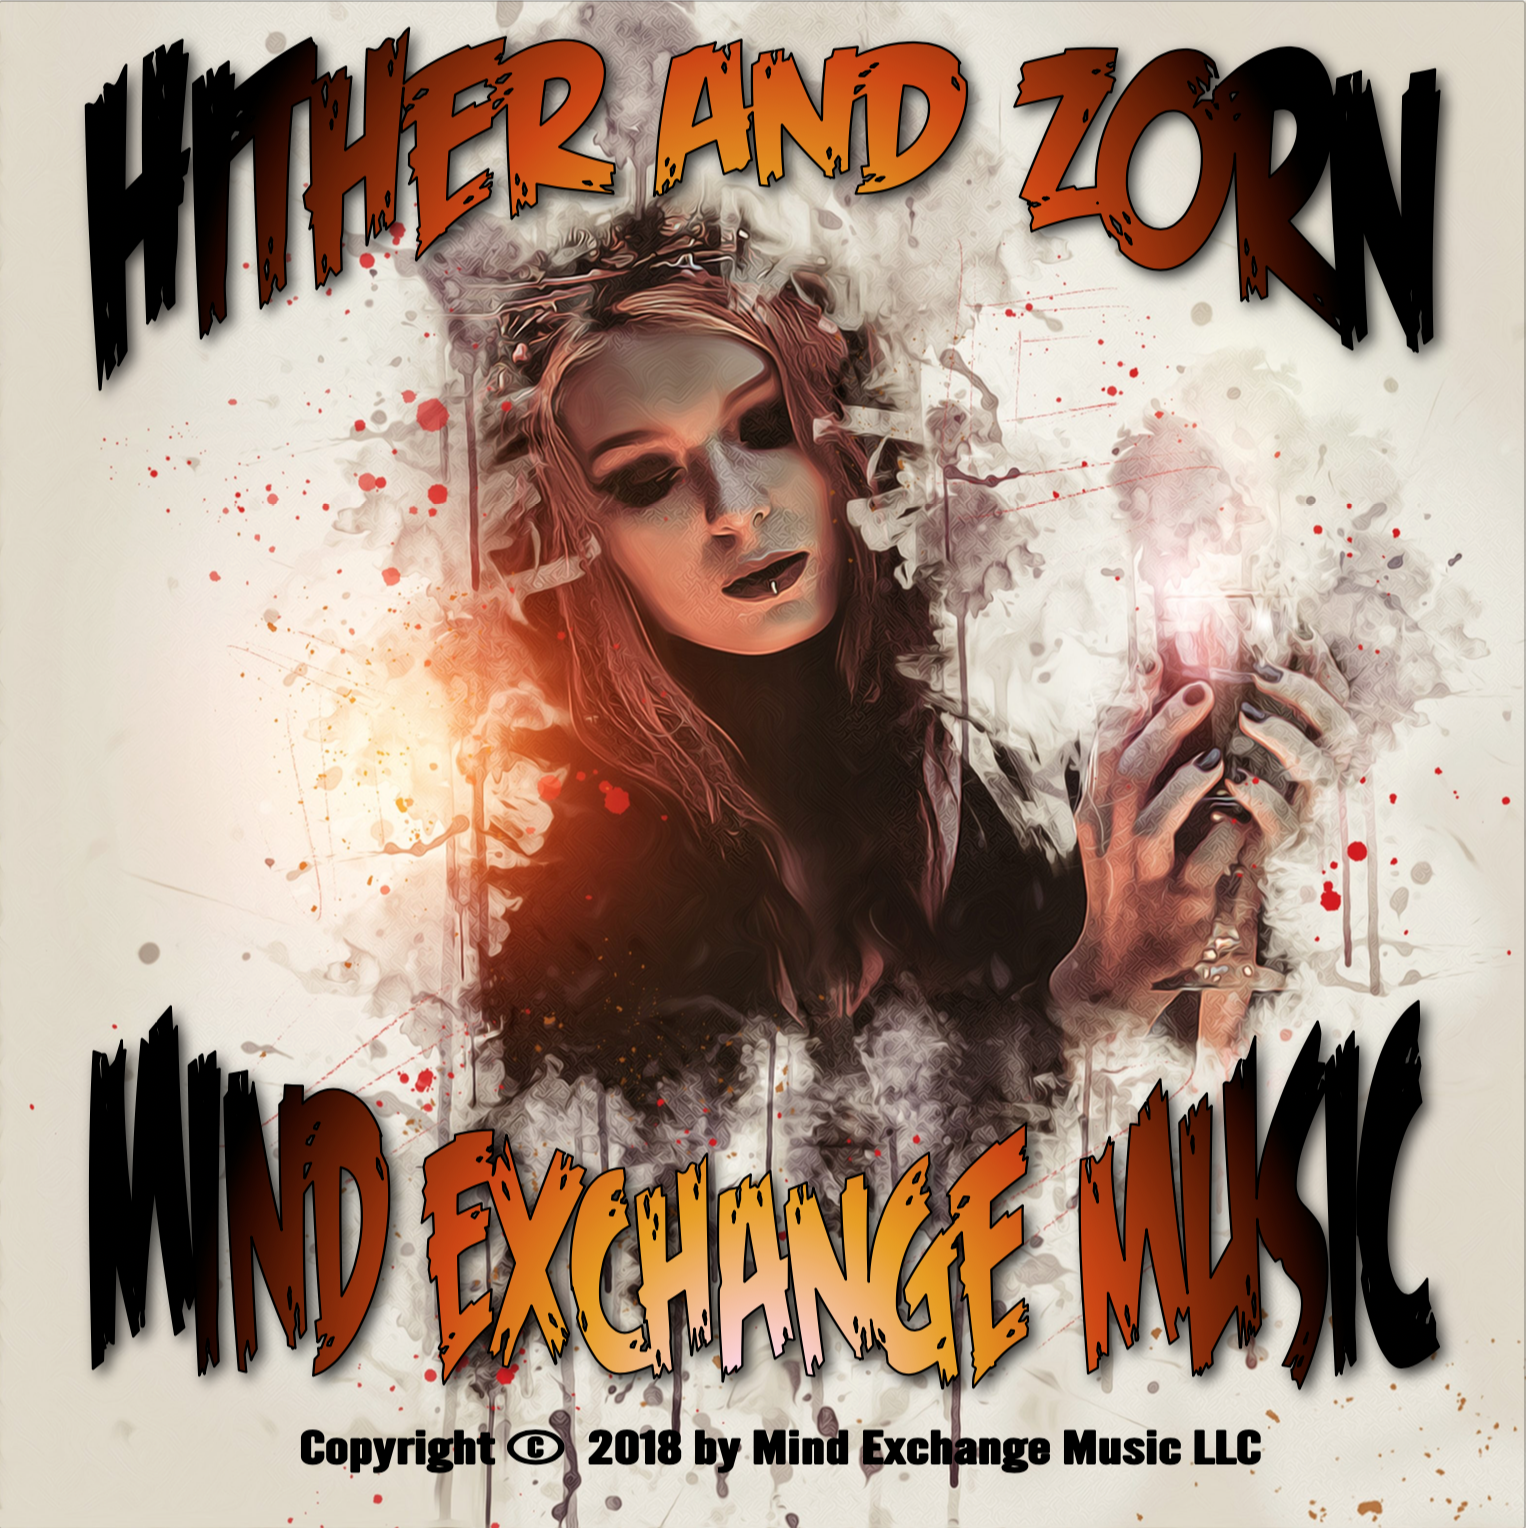 Hither And Zorn Album Cover